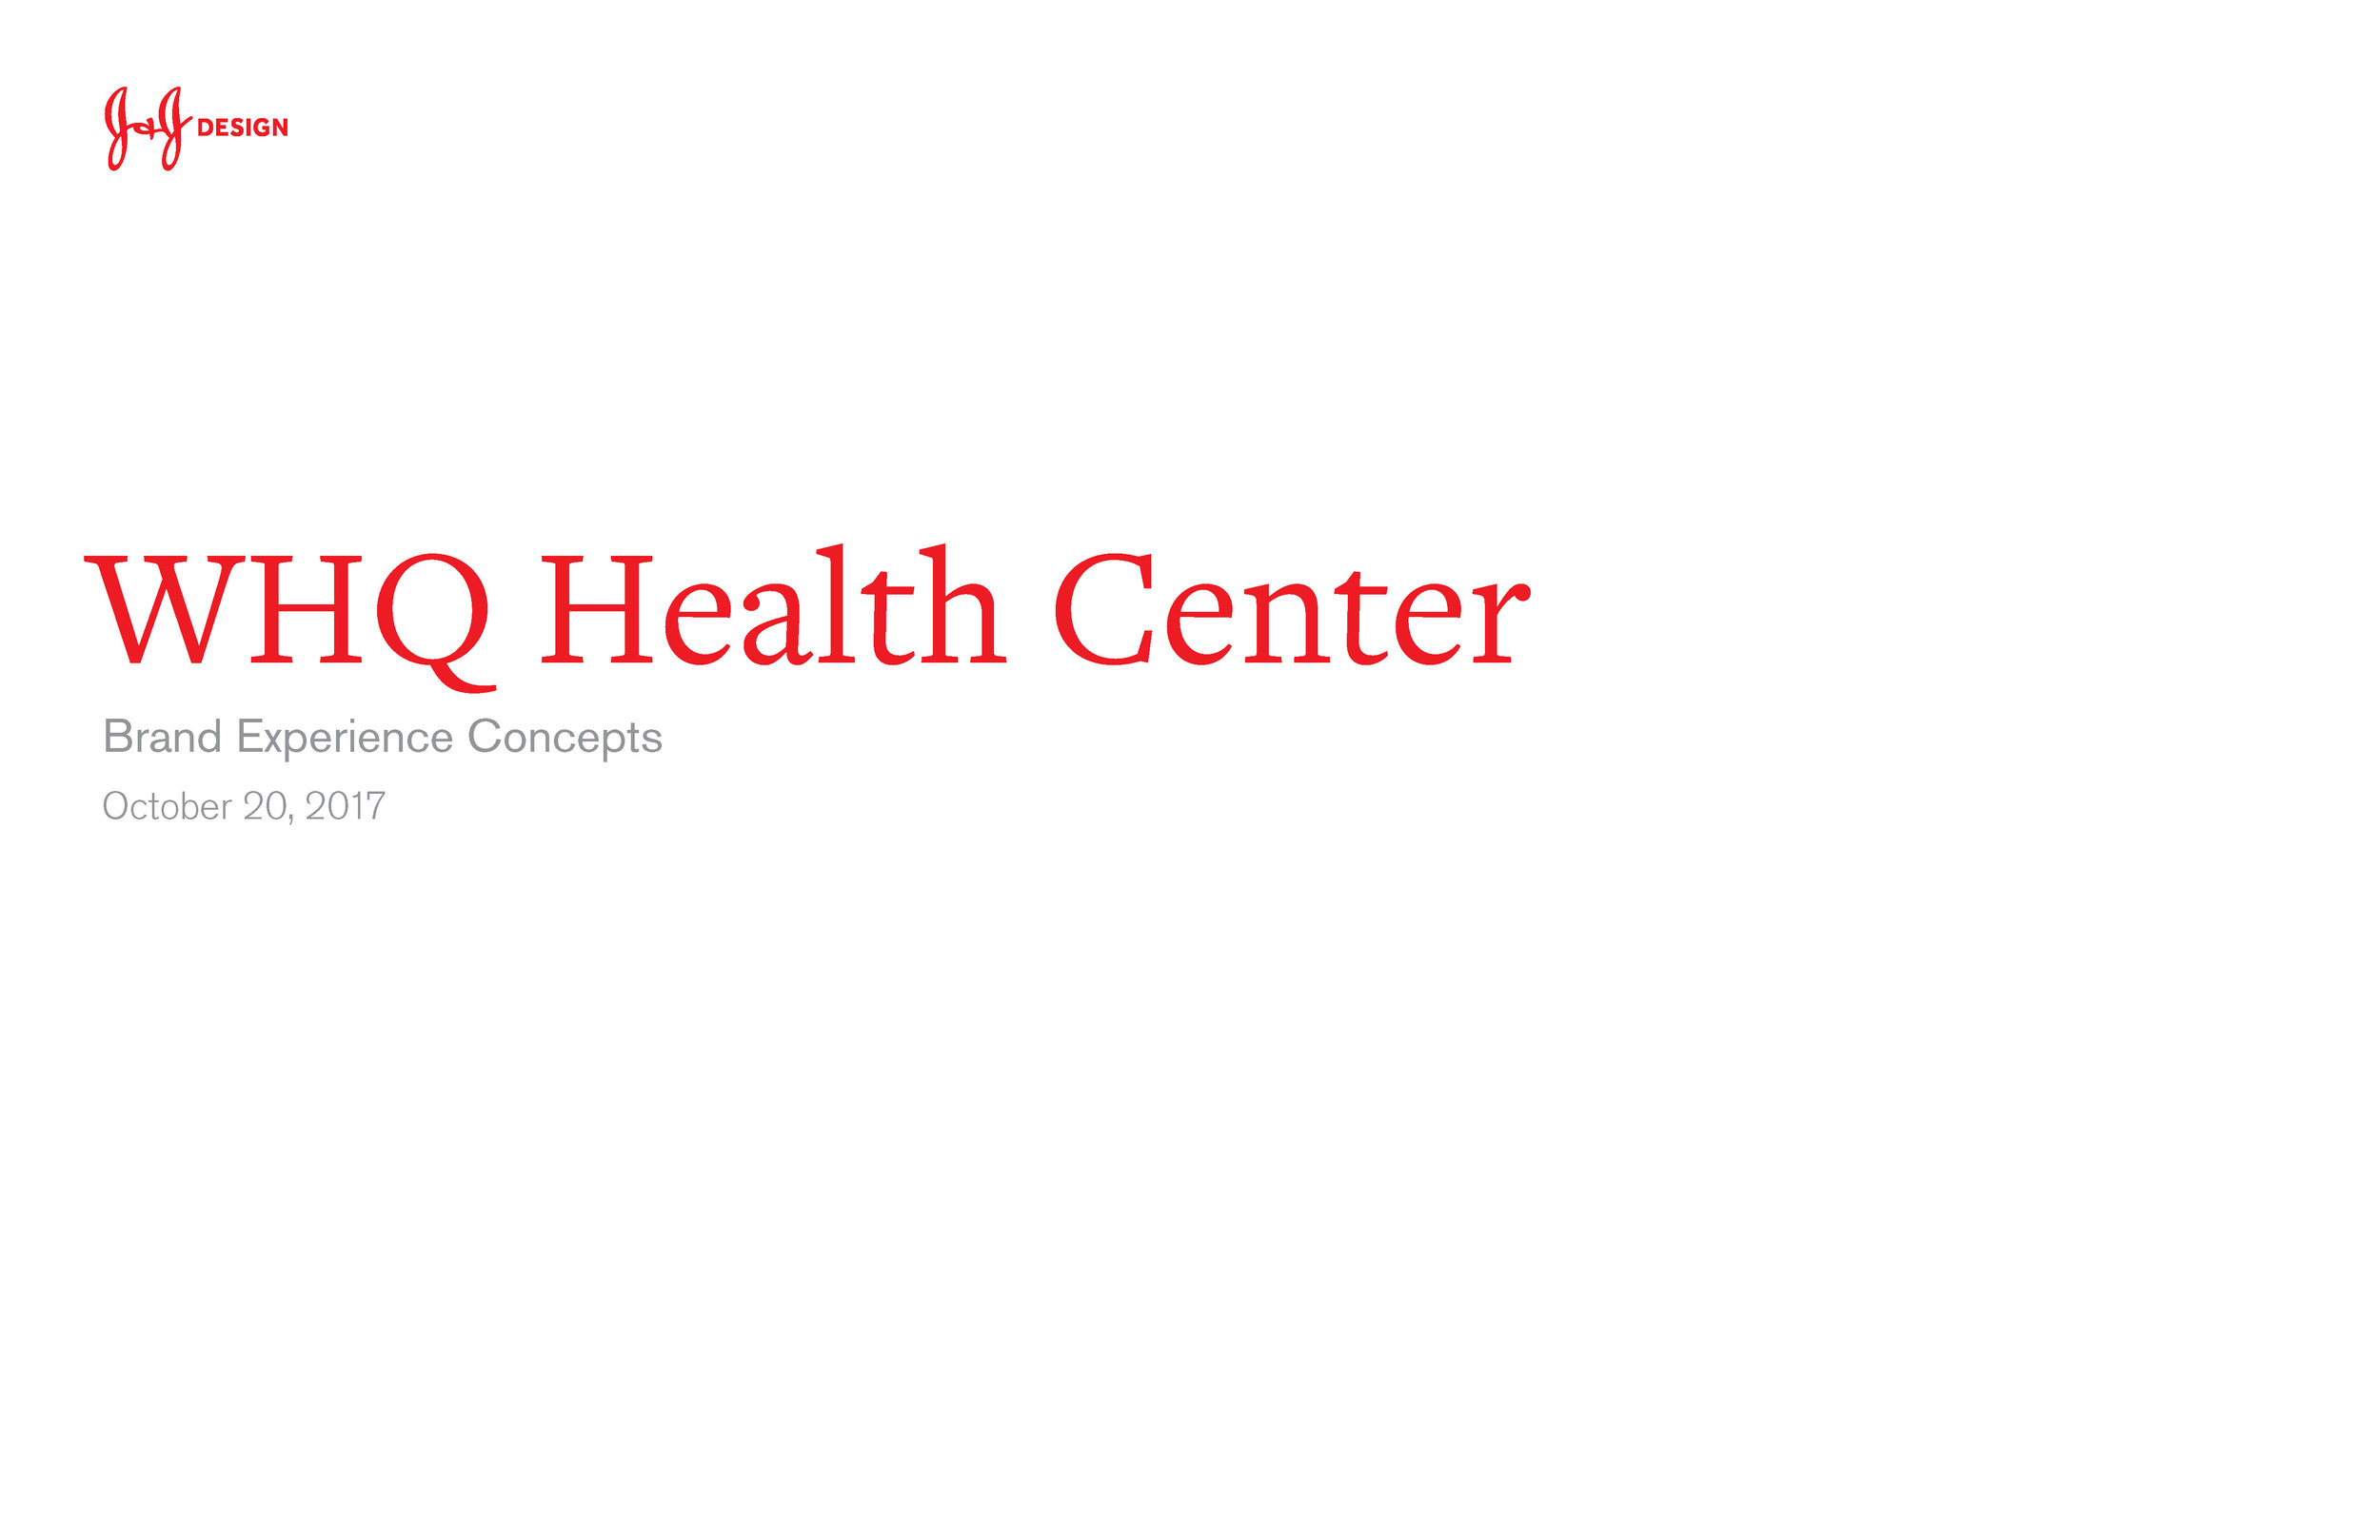 171020_WHQ-HealthCenter_Concepts1_Page_01.jpg